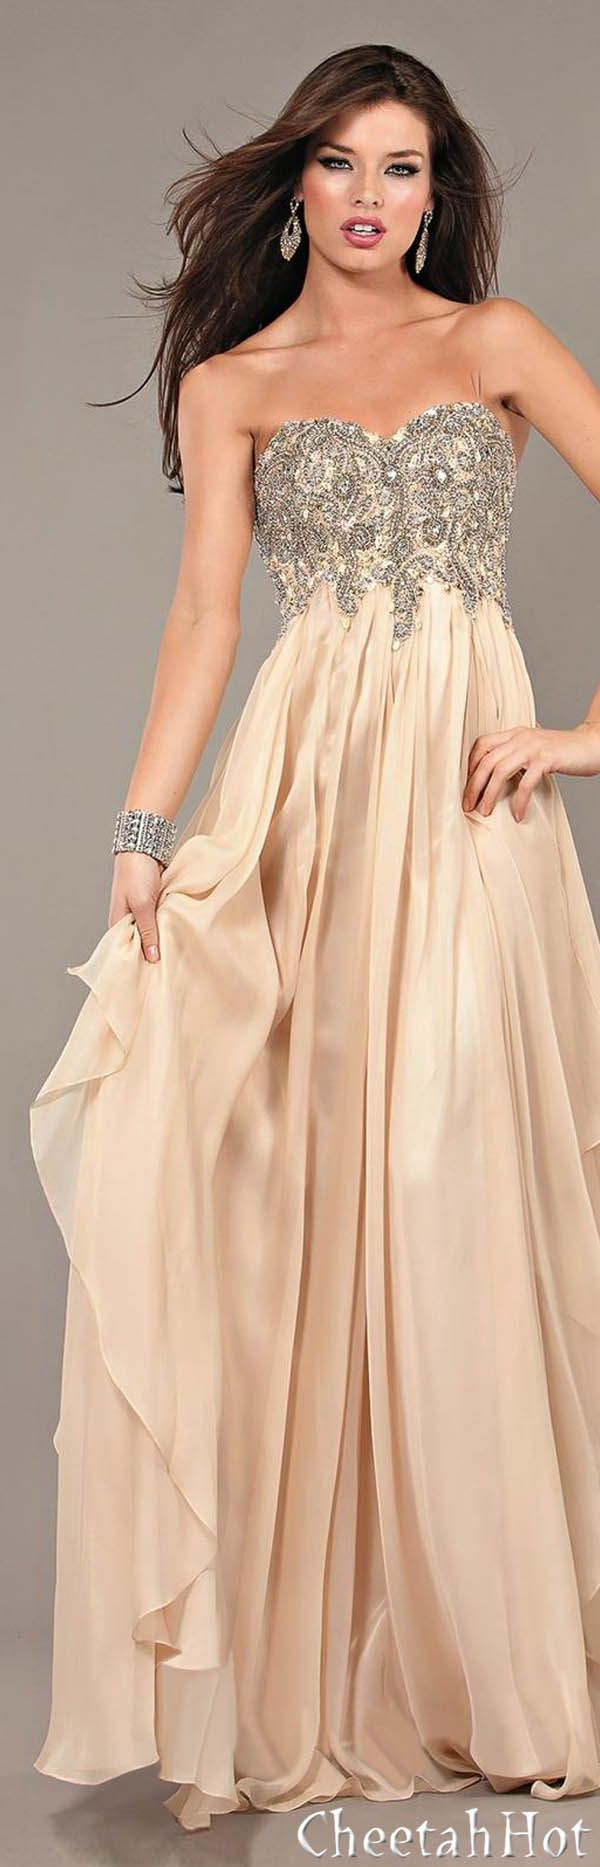 Pin by pola egidius on clothes pinterest gowns prom and clothes